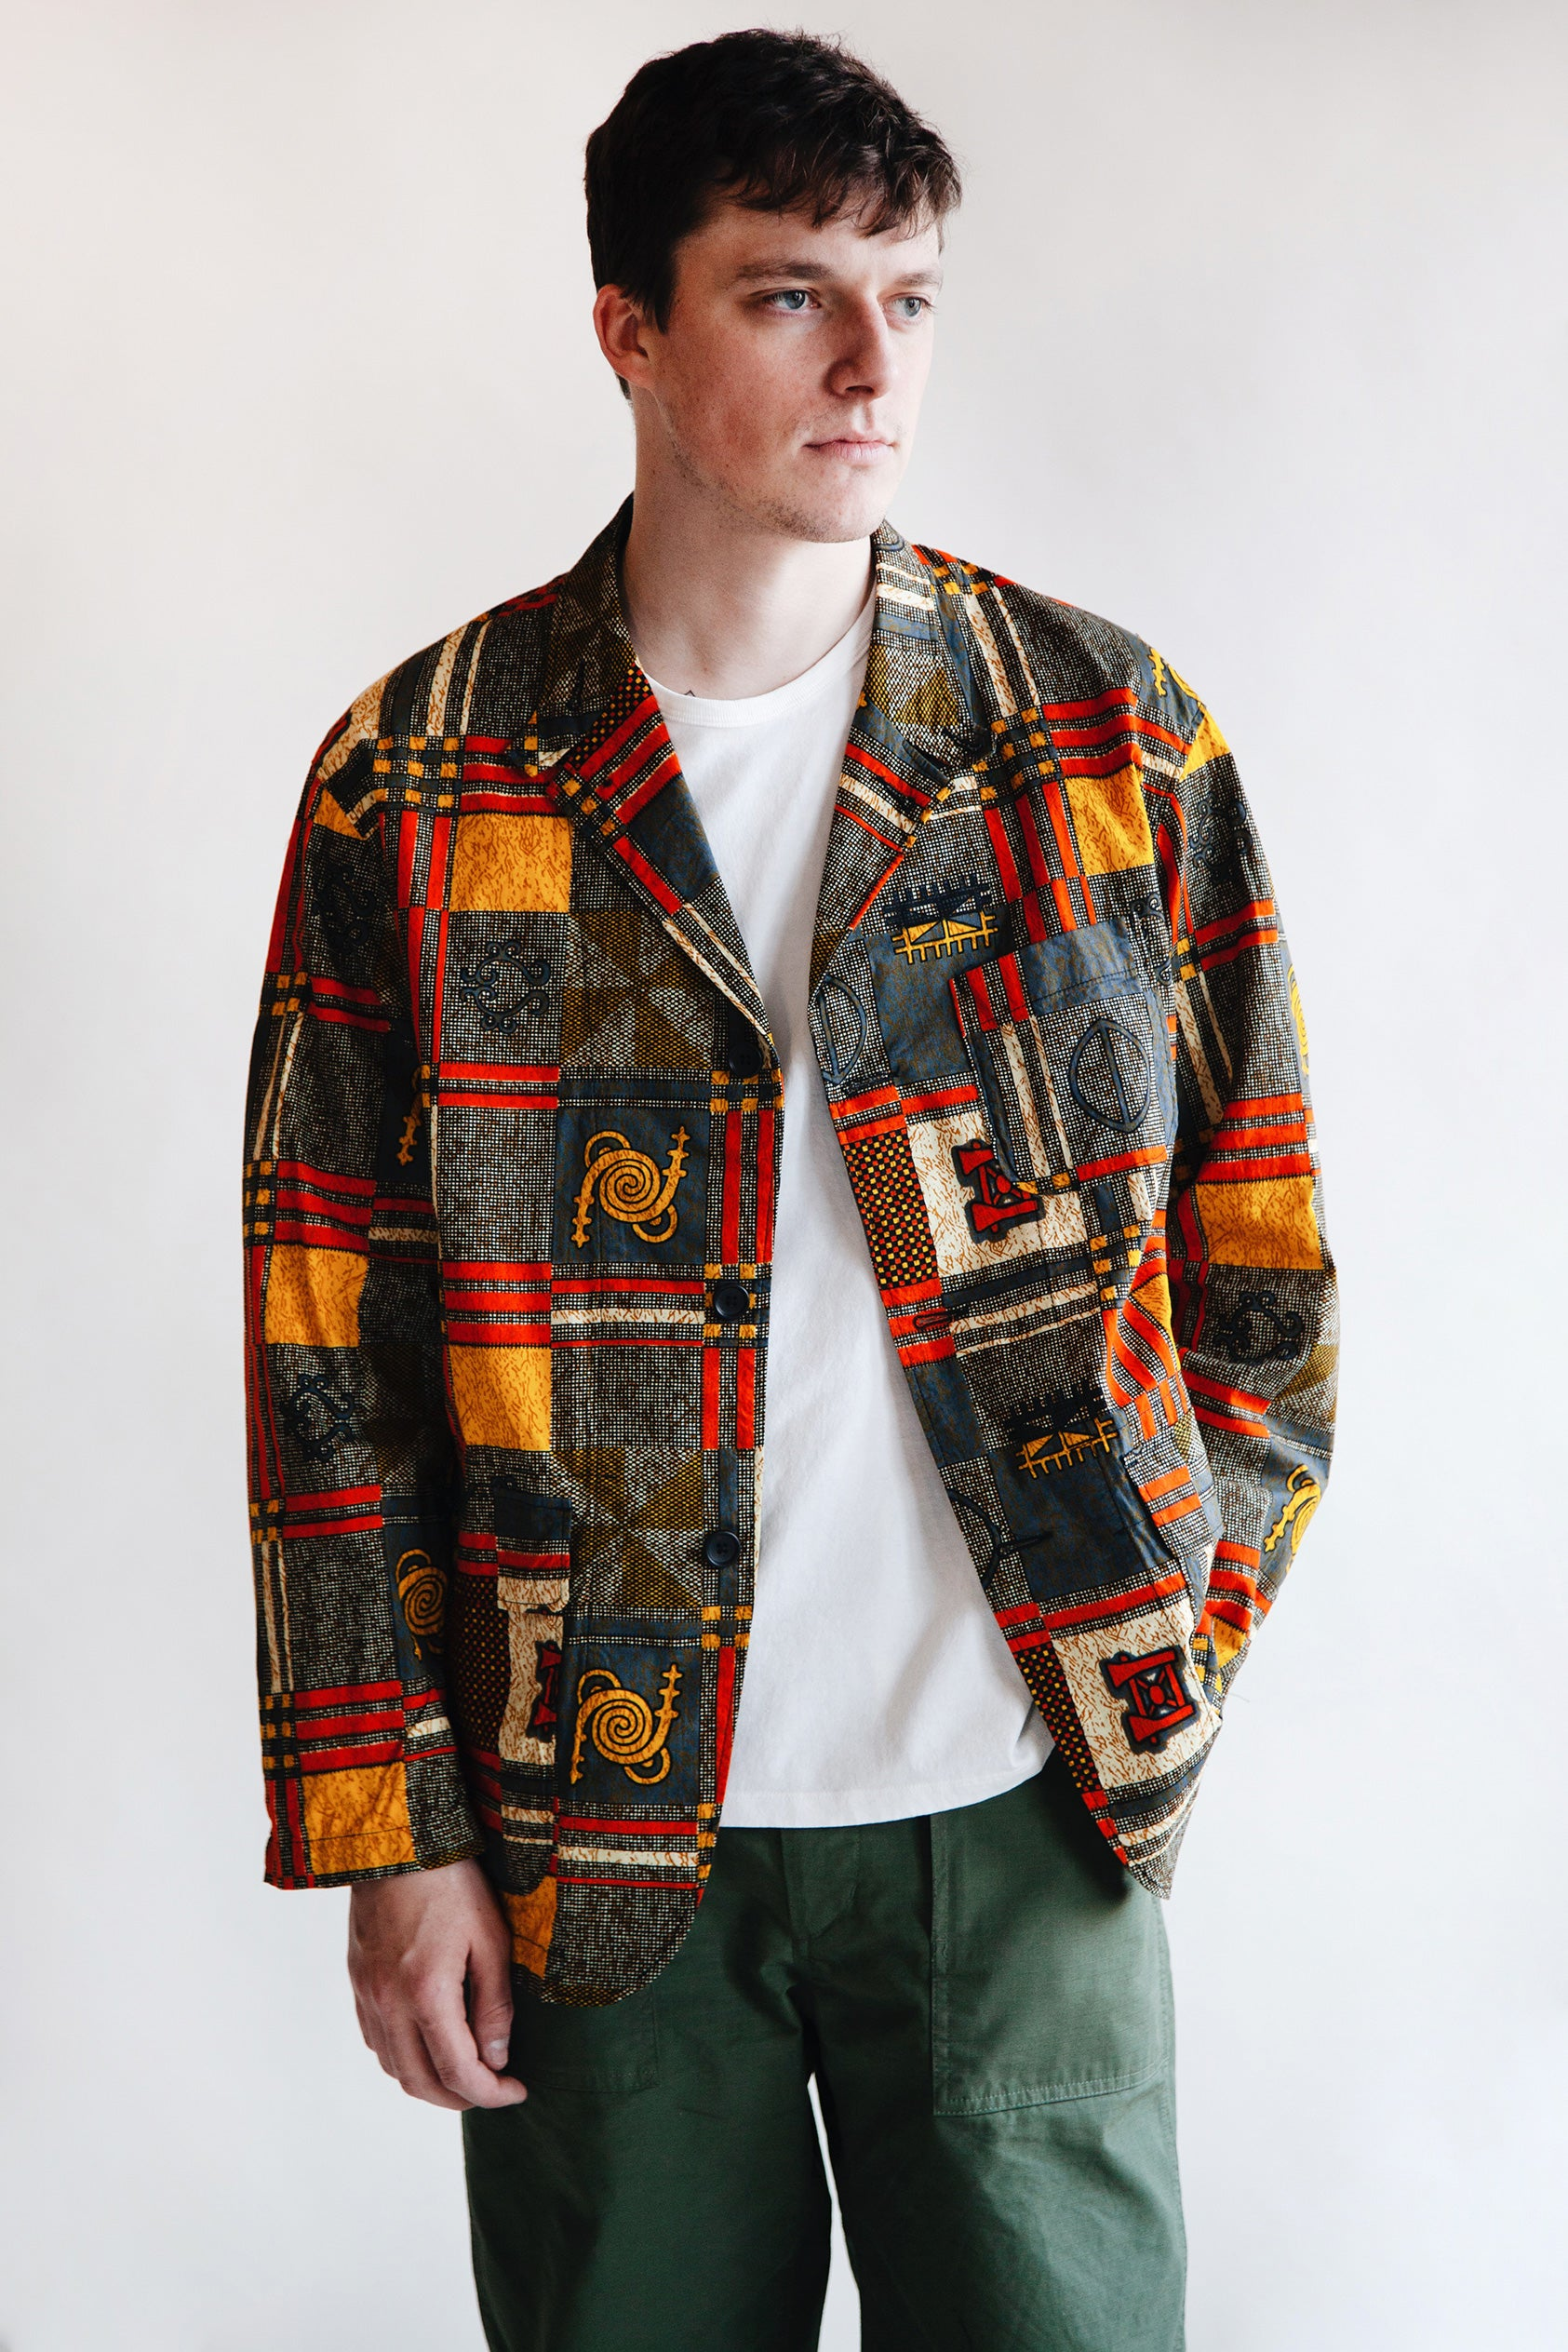 Engineered Garments - Loiter Jacket - Black/Gold African Print - Canoe Club